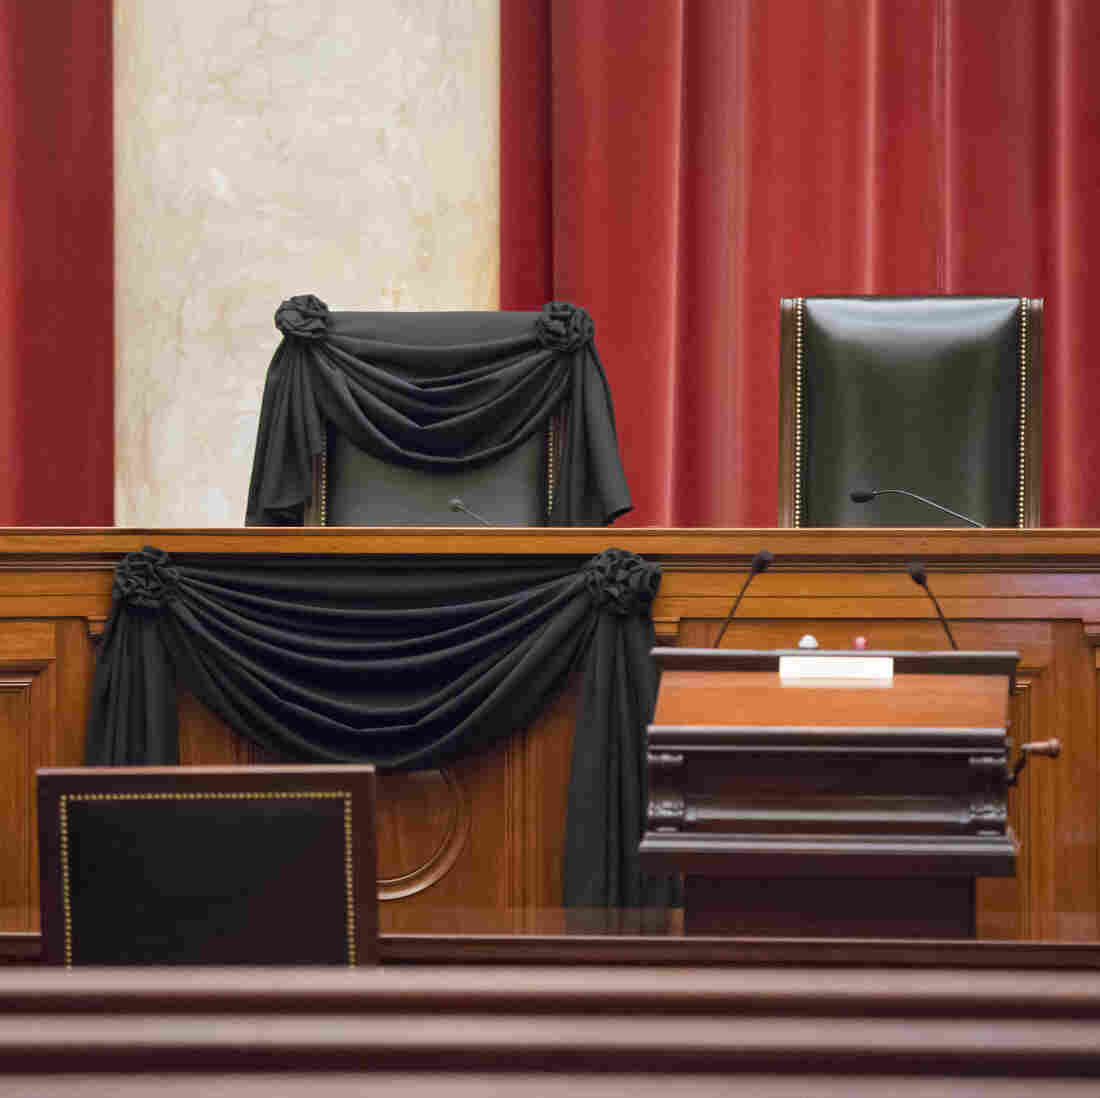 Supreme Court Justice Antonin Scalia's courtroom chair is draped in black to mark his death in a tradition that dates to the 19th century.